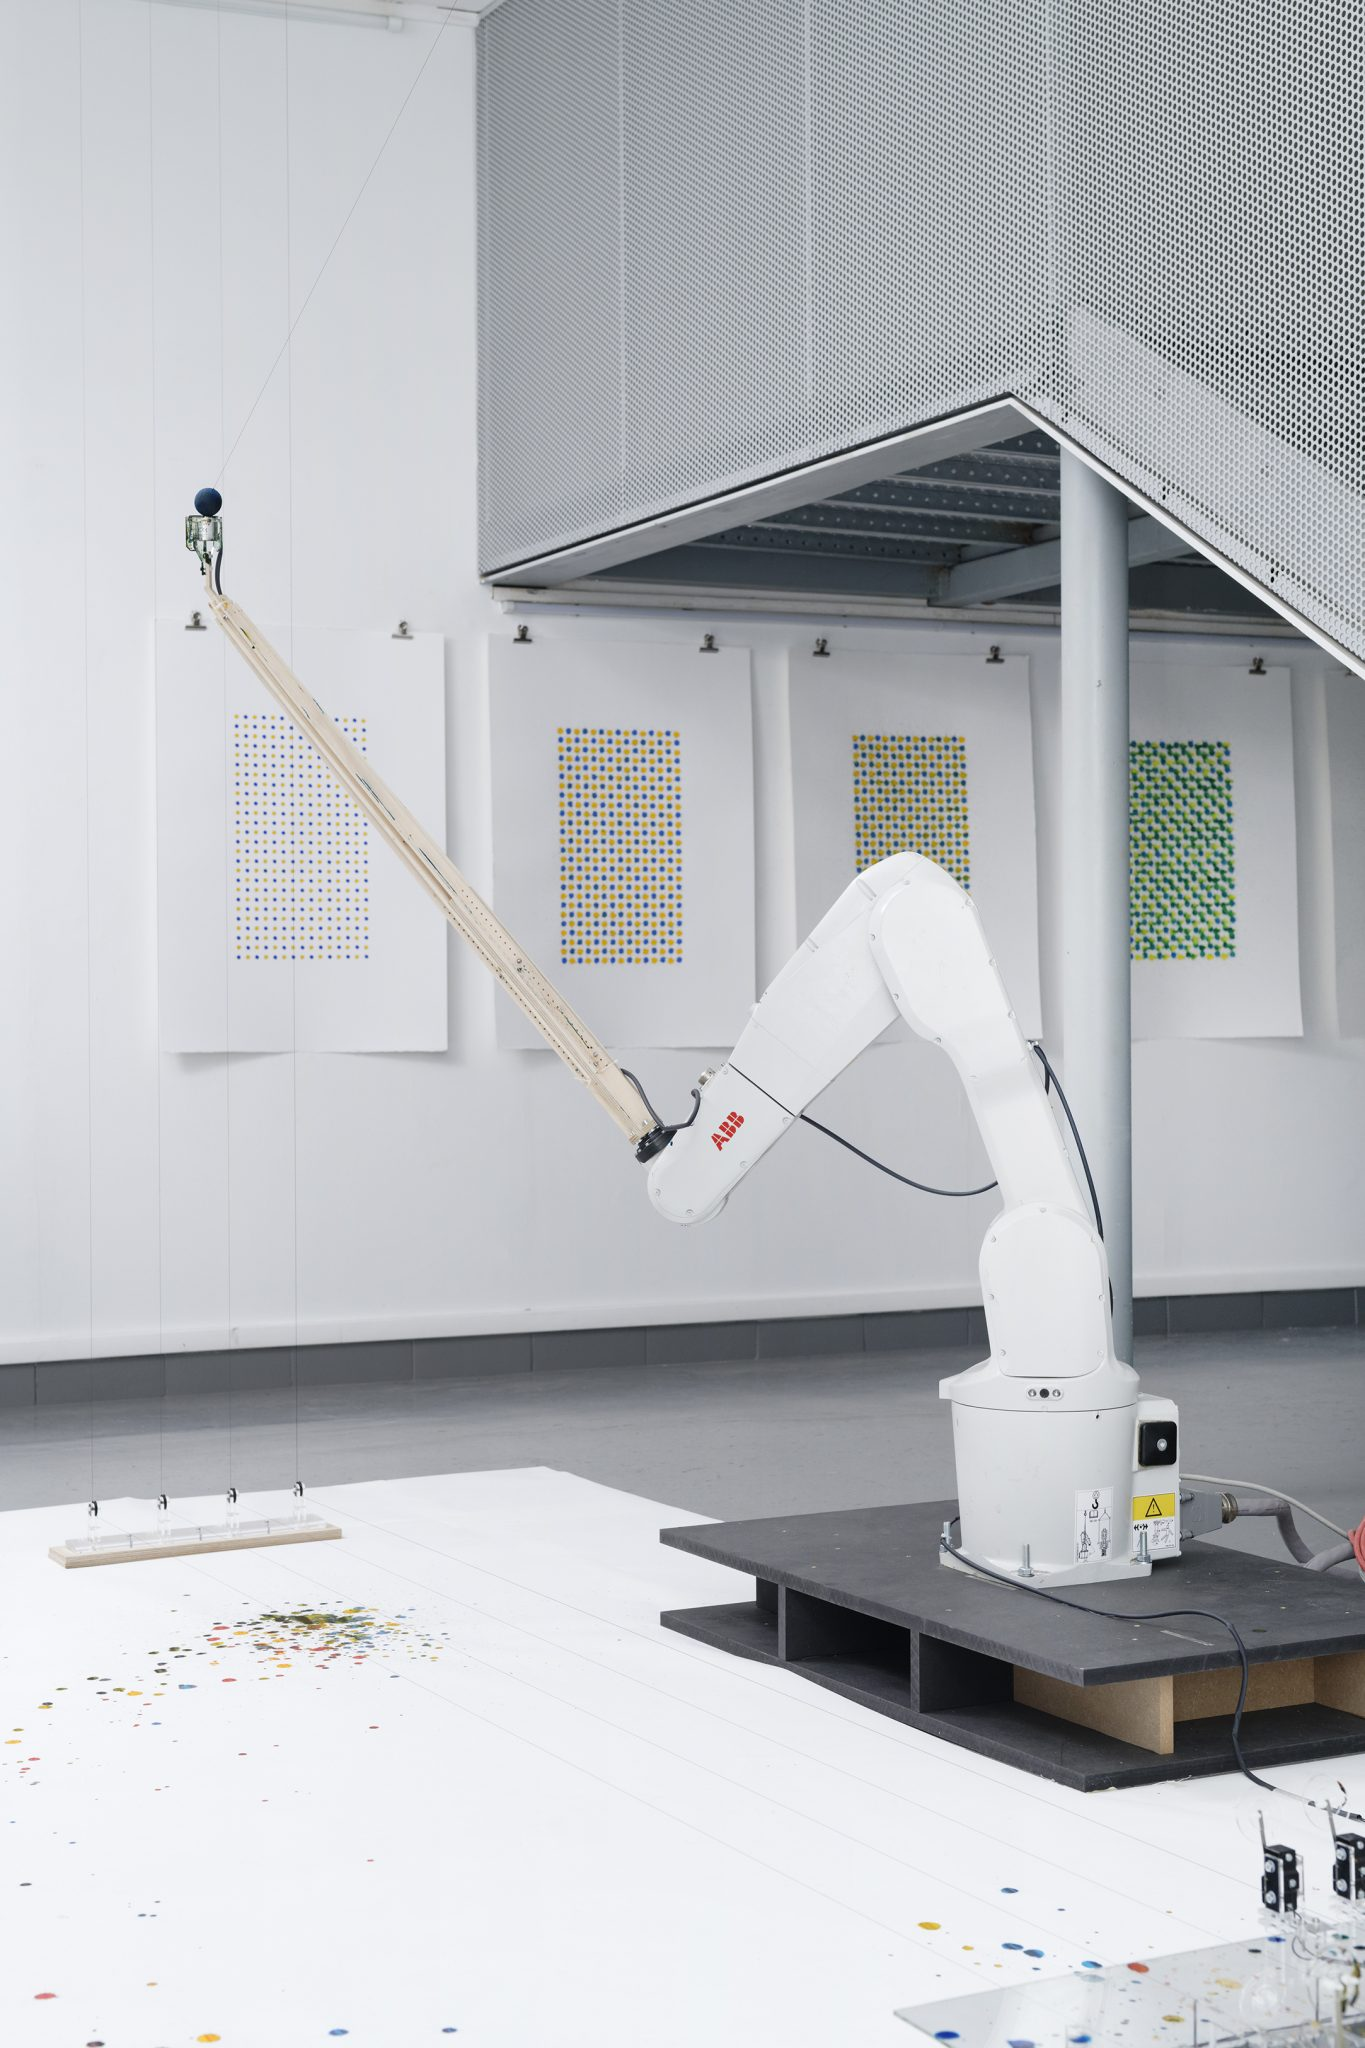 Computational drawing experiment with robotic painting at AA[n+1] Gallery for Area Institute, Paris, 2018 by Machinic Protocols